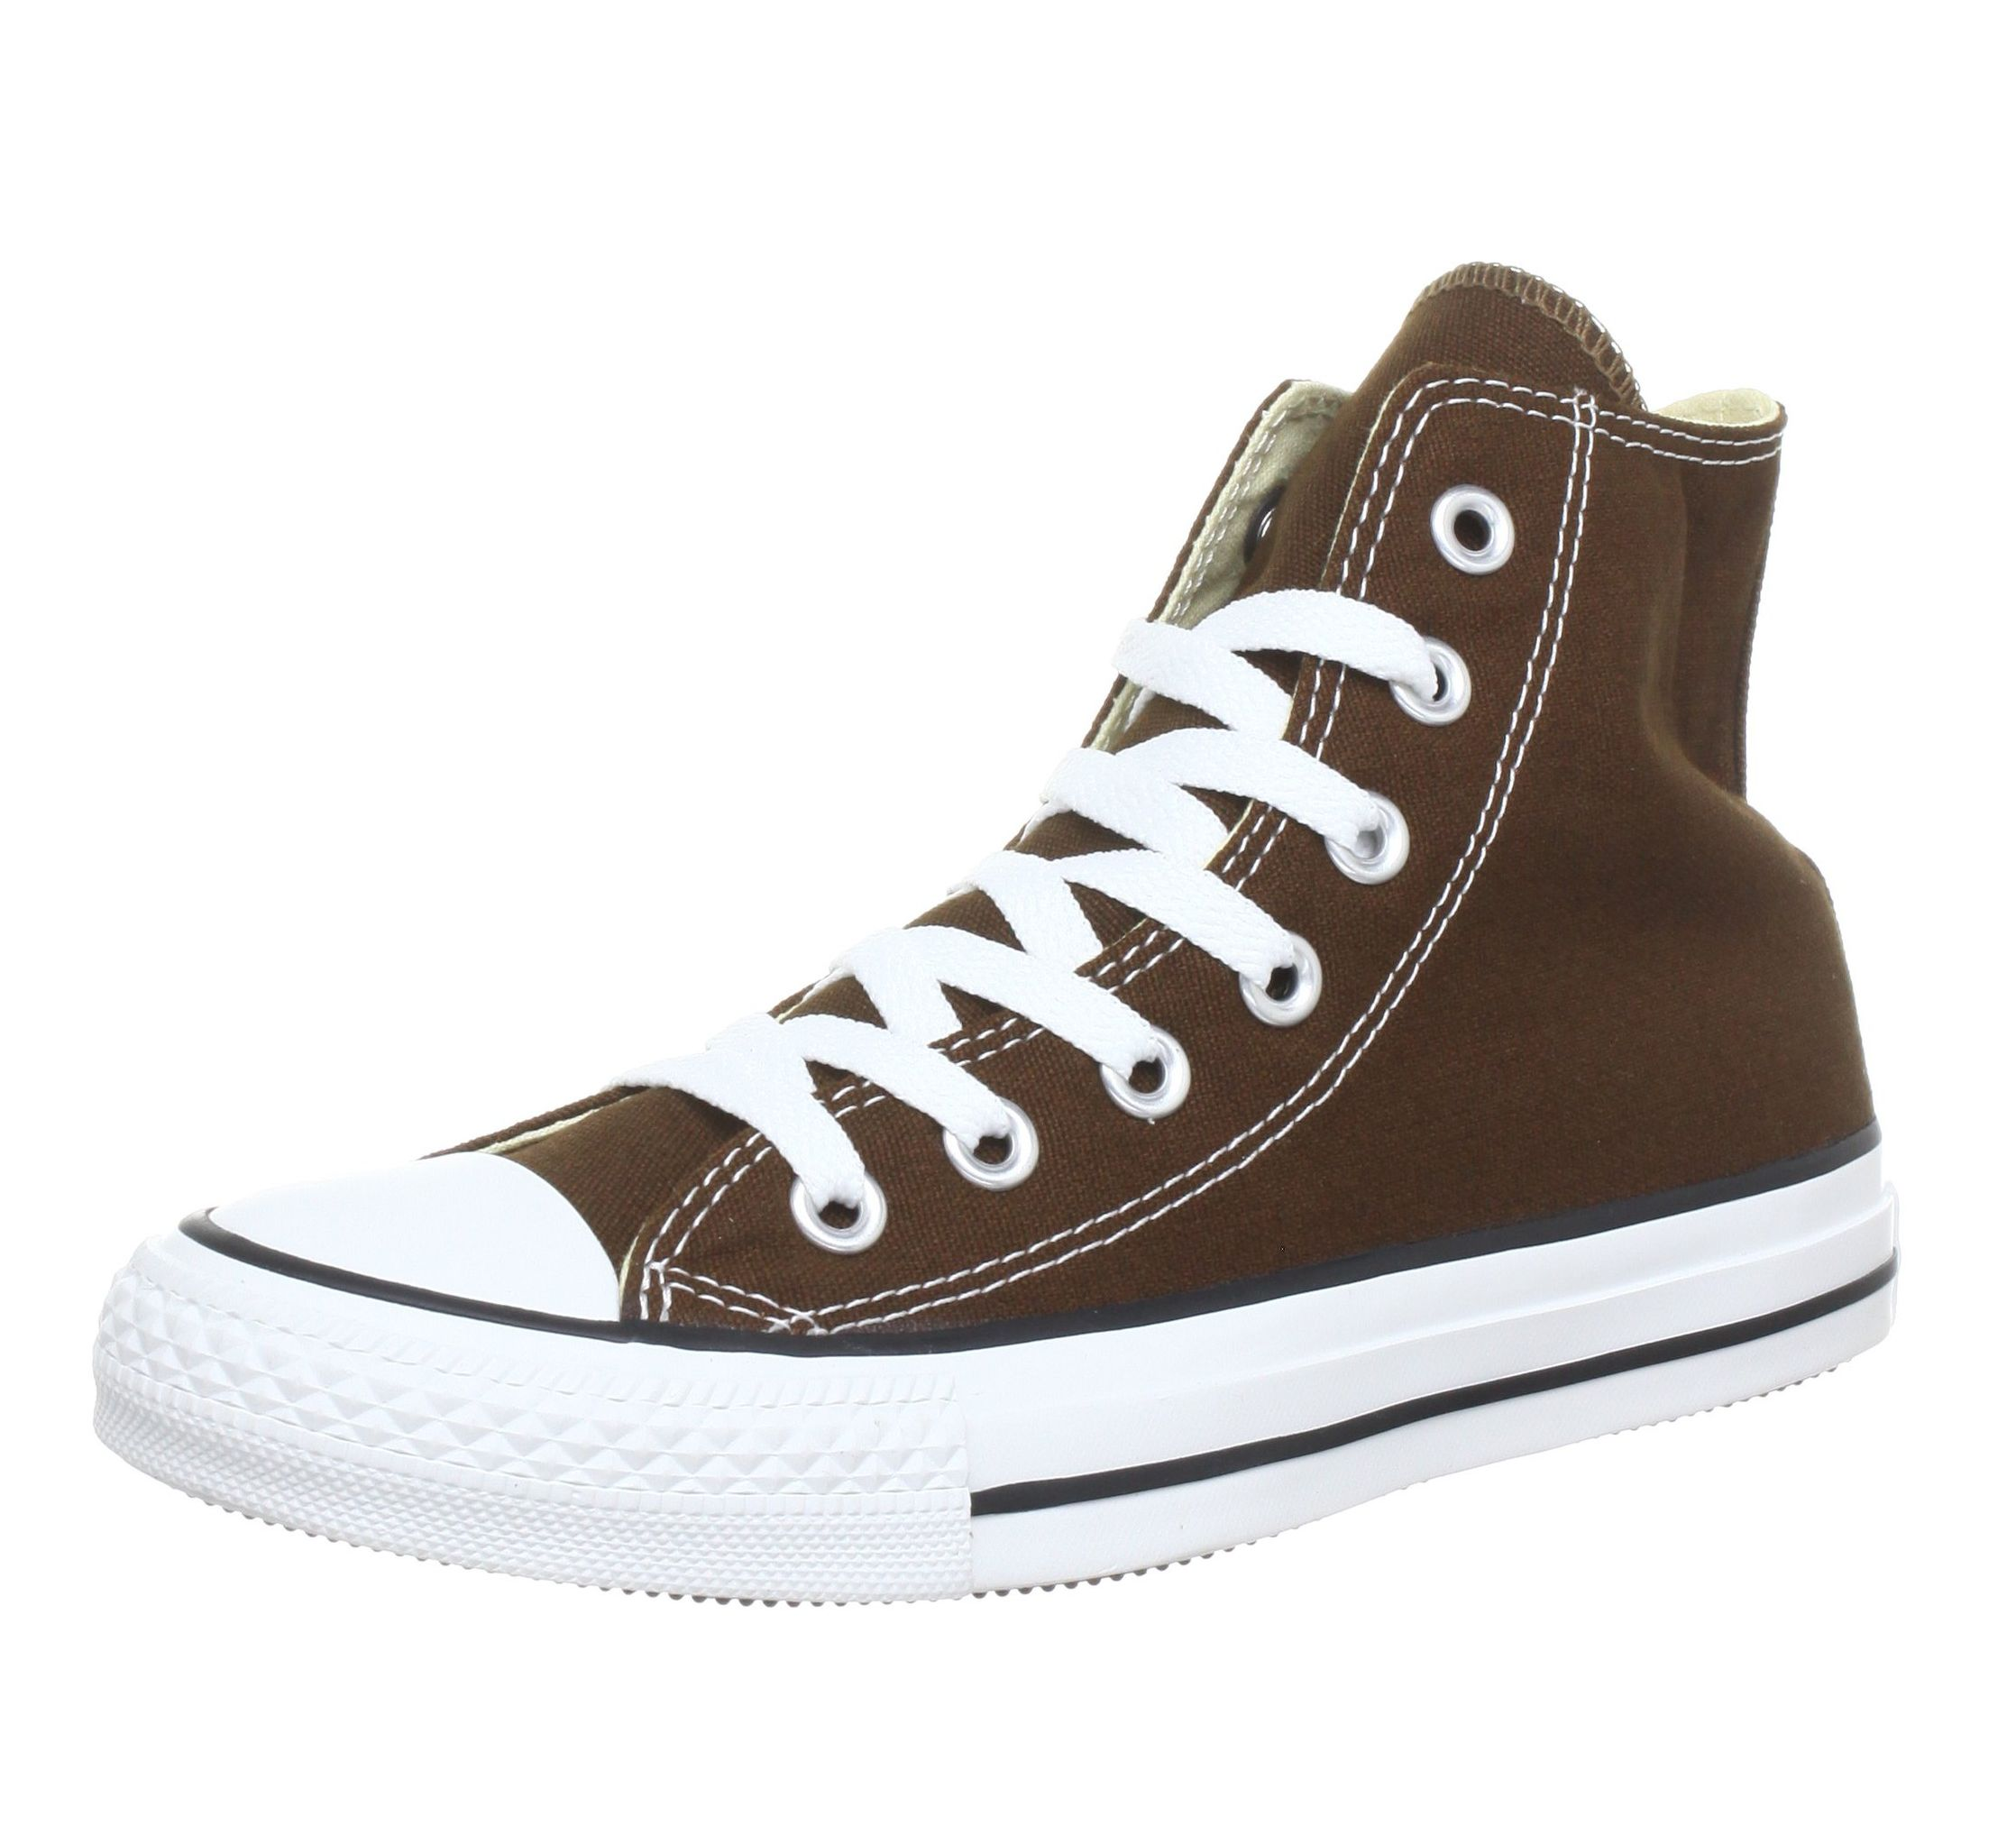 Converse All Star Chuck Taylor Hi Brown Chocolate Shoes